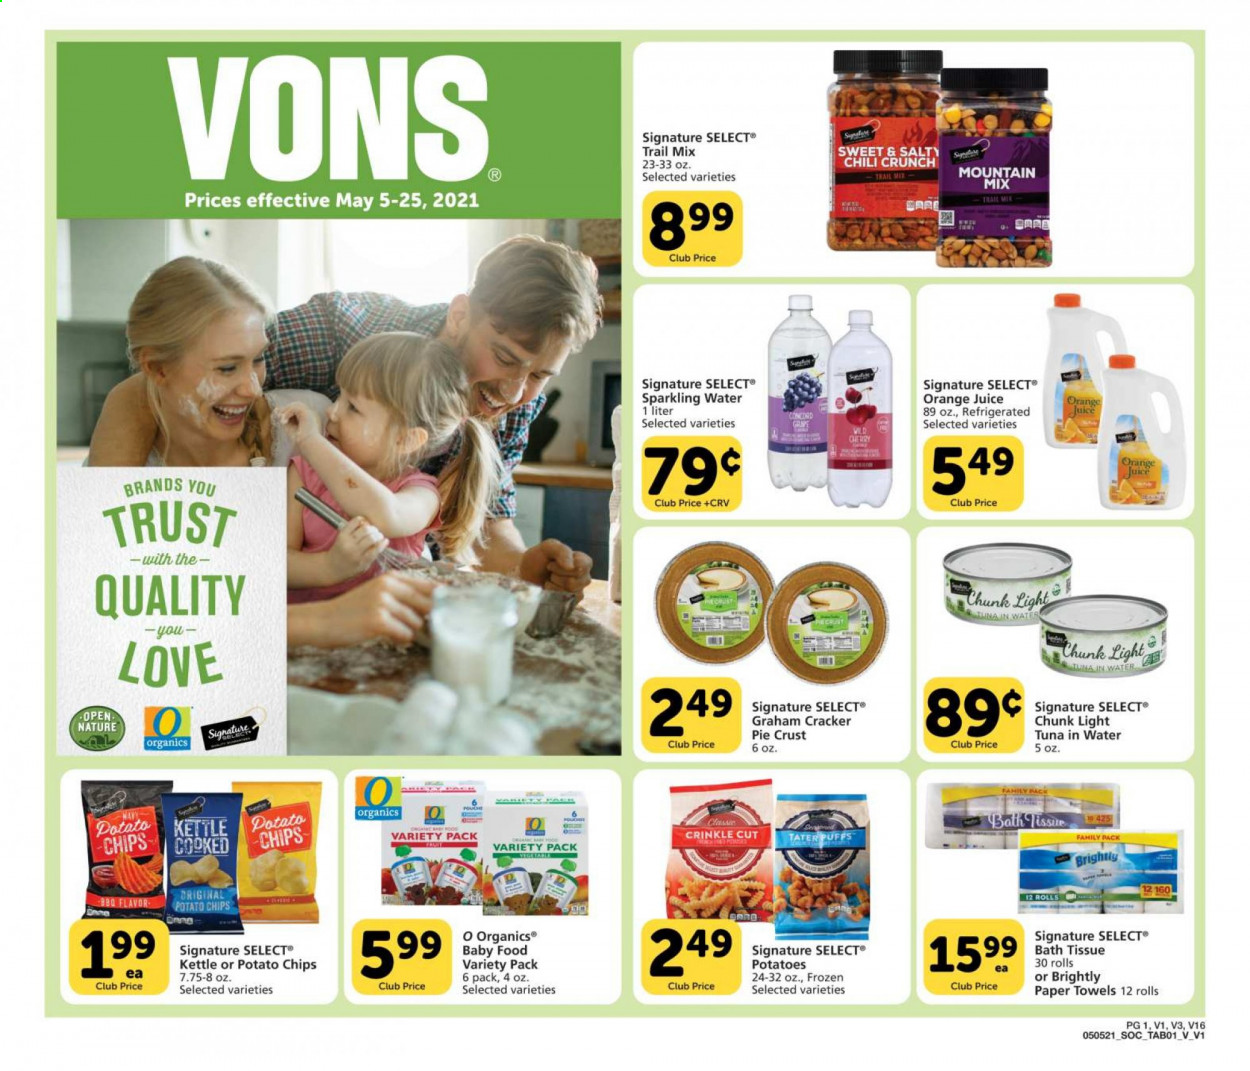 Vons Ad from may 5 to 25 2021